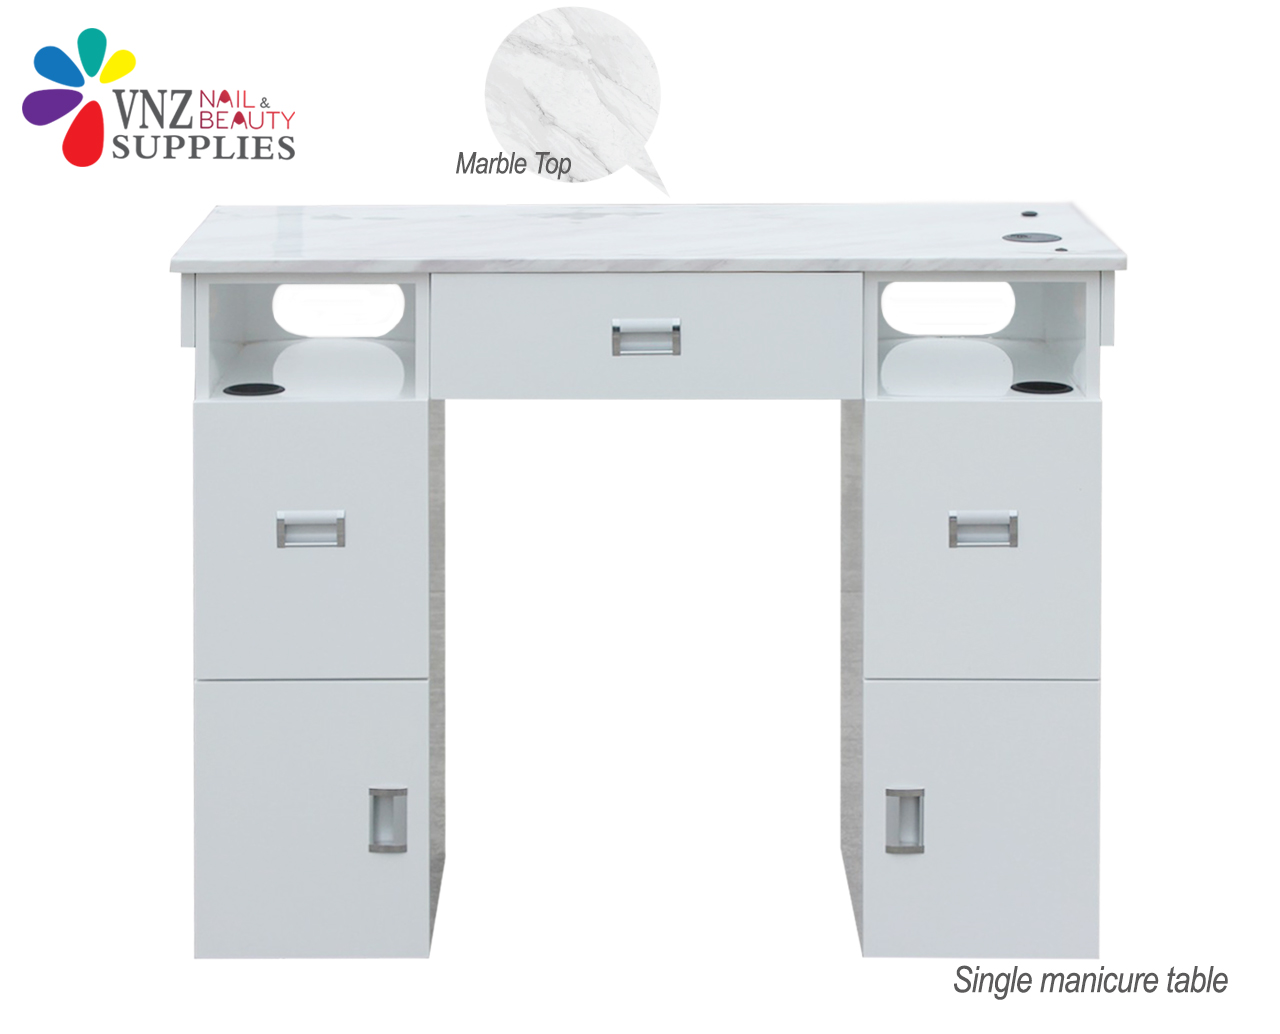 Single Manicure Table Marble Top (Black&White)